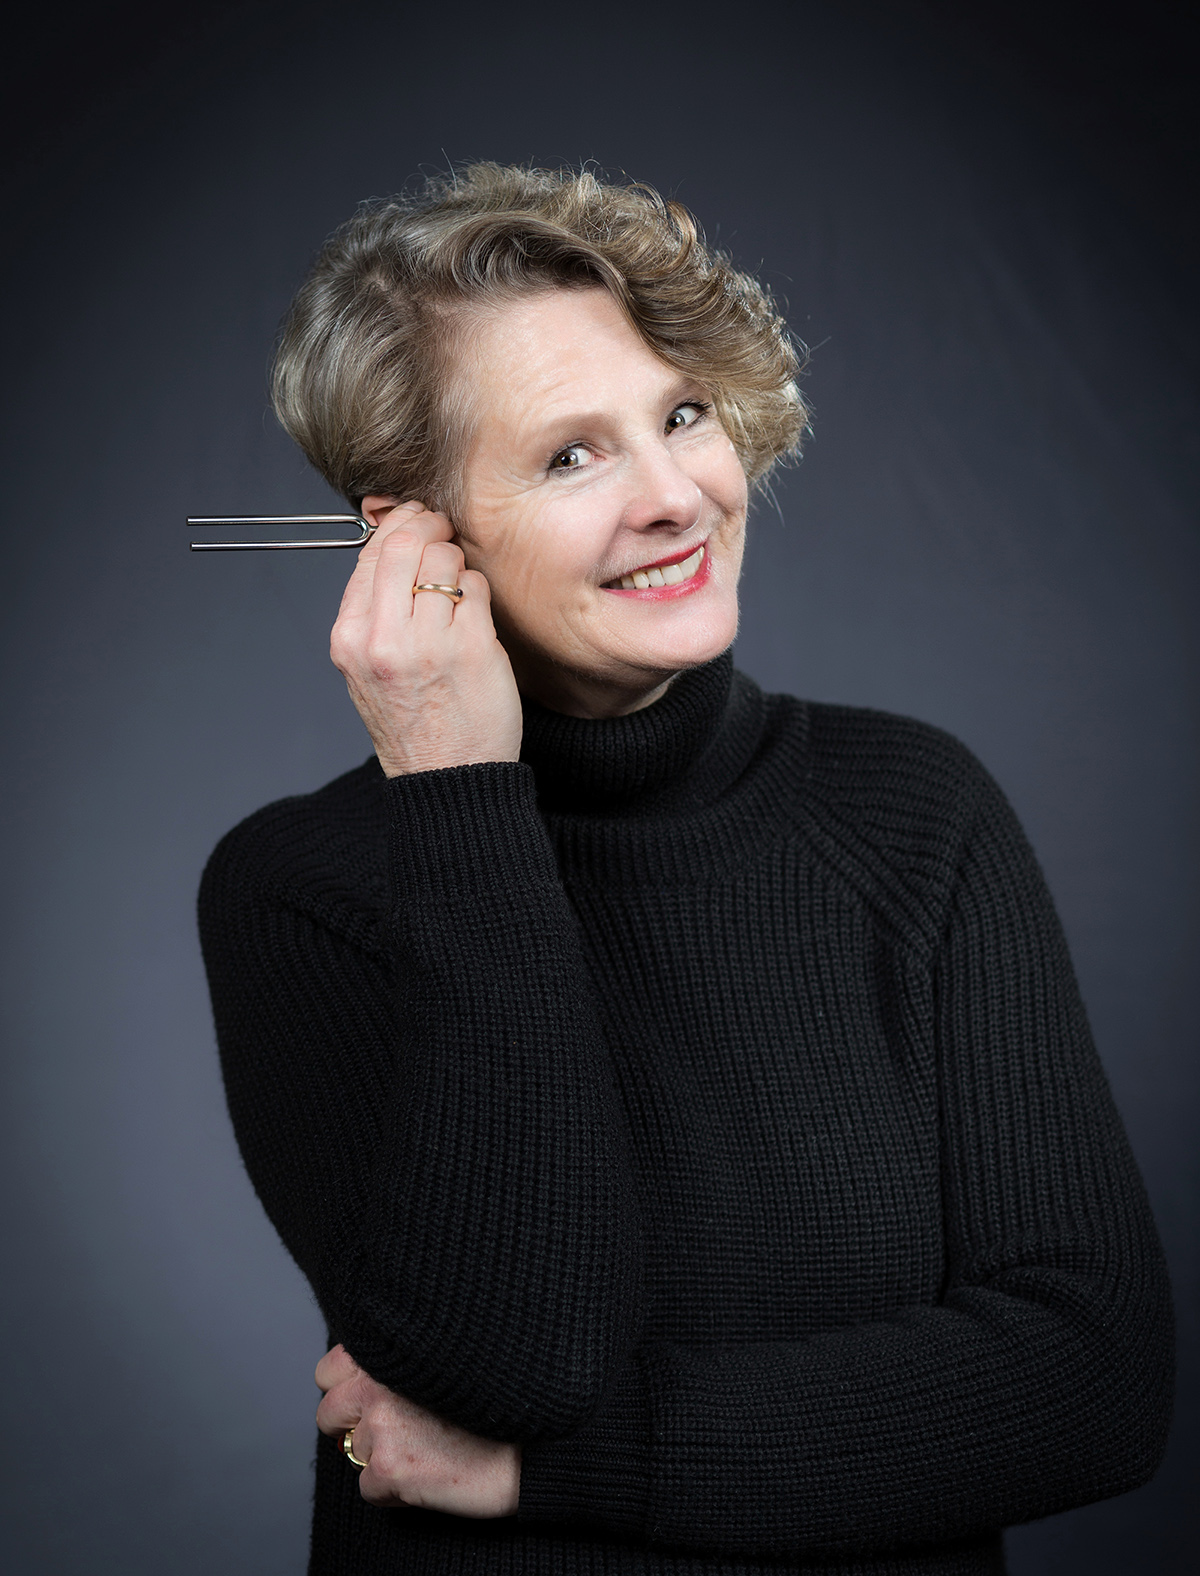 Sabine Wüsthoff, Artistic Director, Chief Conductor | Berlin Girls Choir